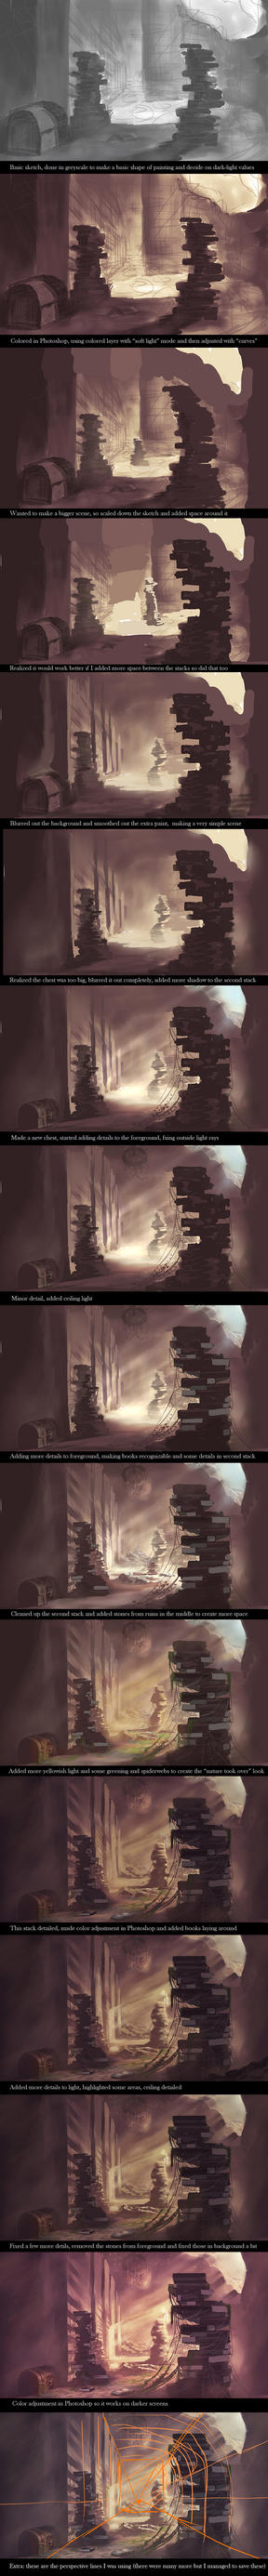 Progress for Abandoned Library Concept by Chibionpu